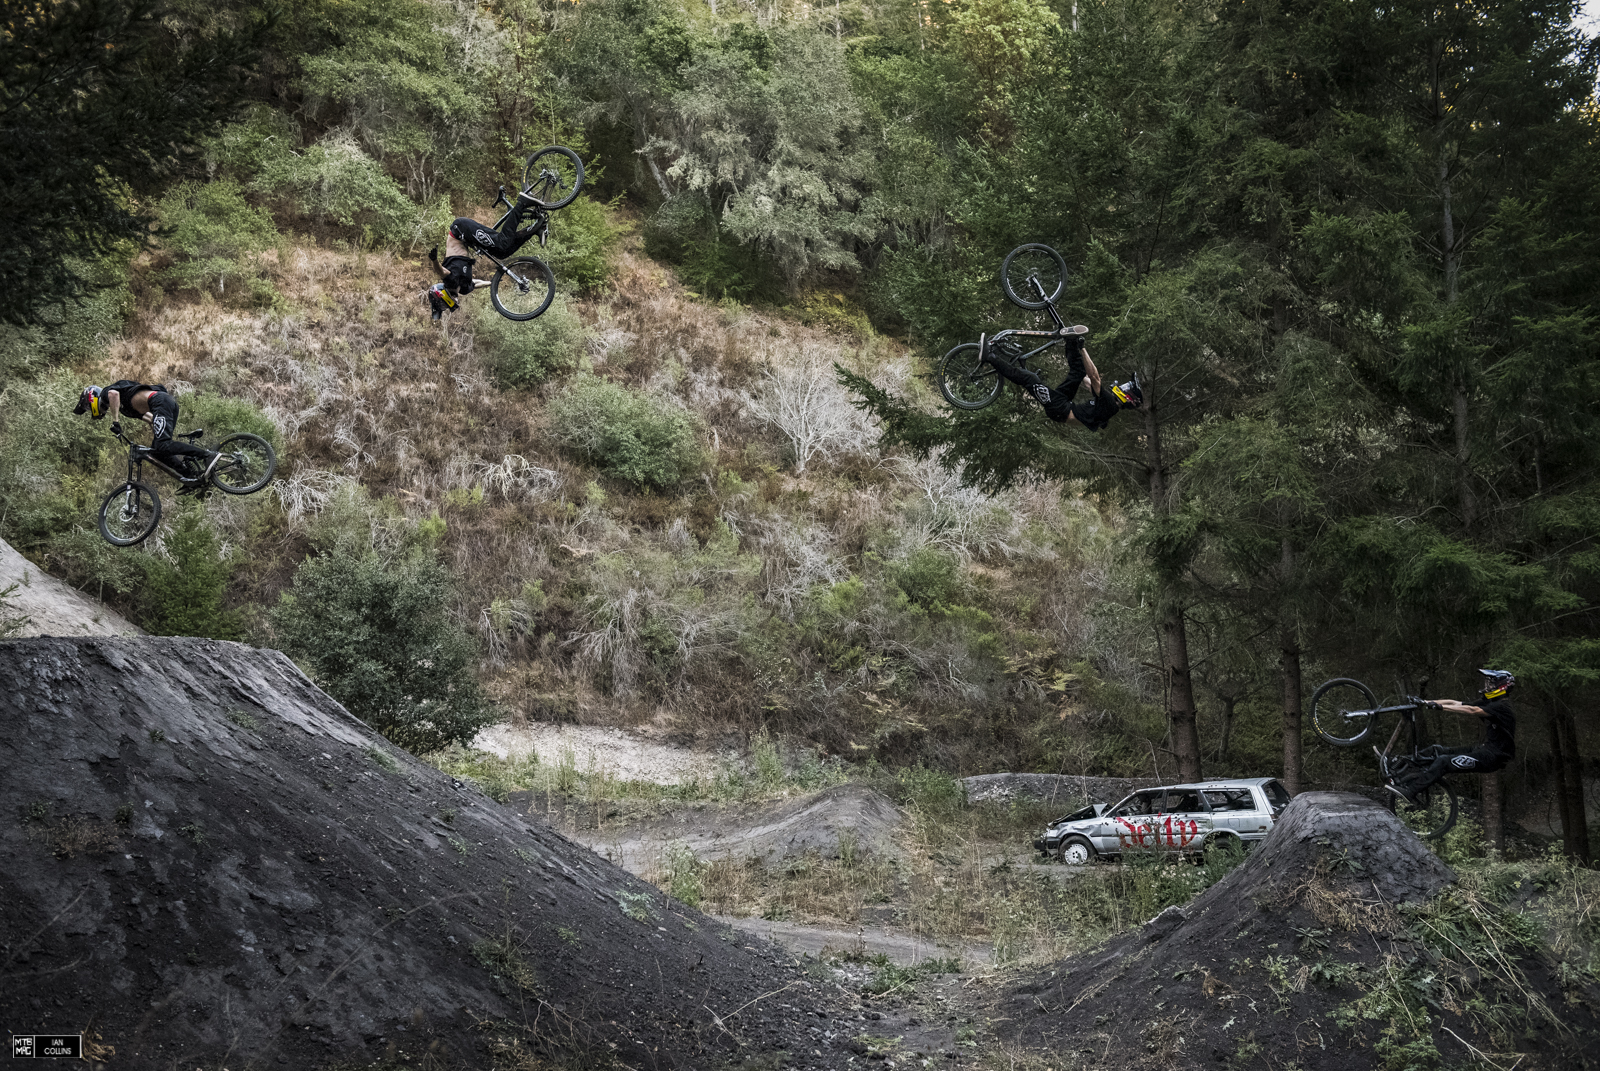 Brandon pushing the envelope with the most ridiculous combo on a DH bike. Flip Can to tuck.